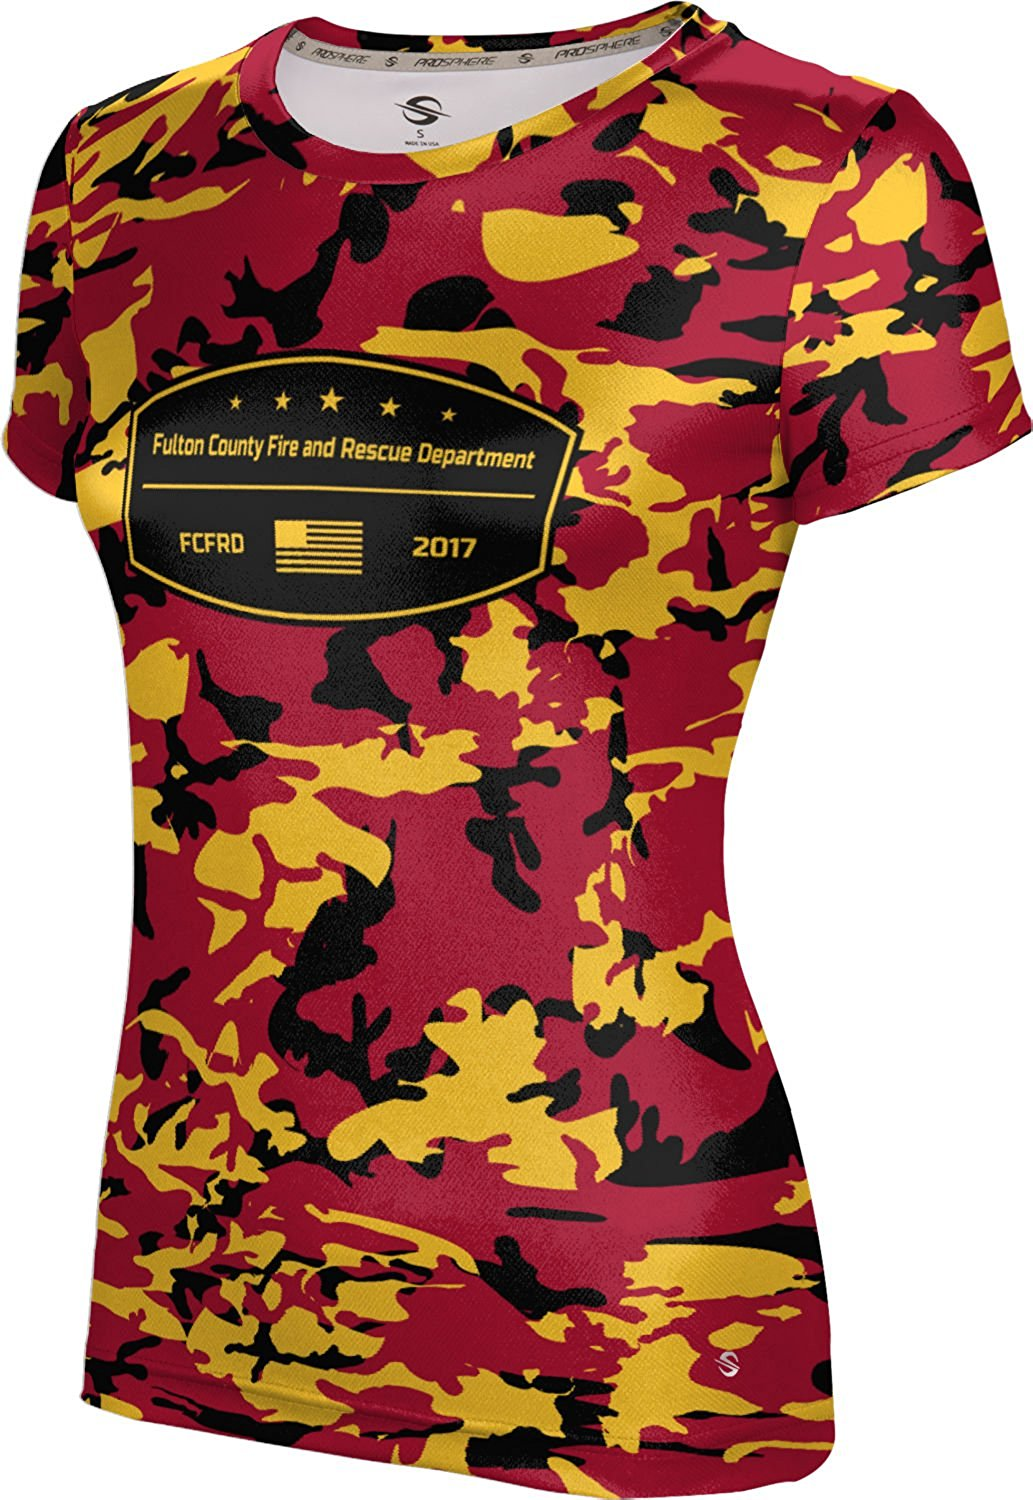 Girls' Fulton County Fire and Rescue Department Fire Department Camo Shirt